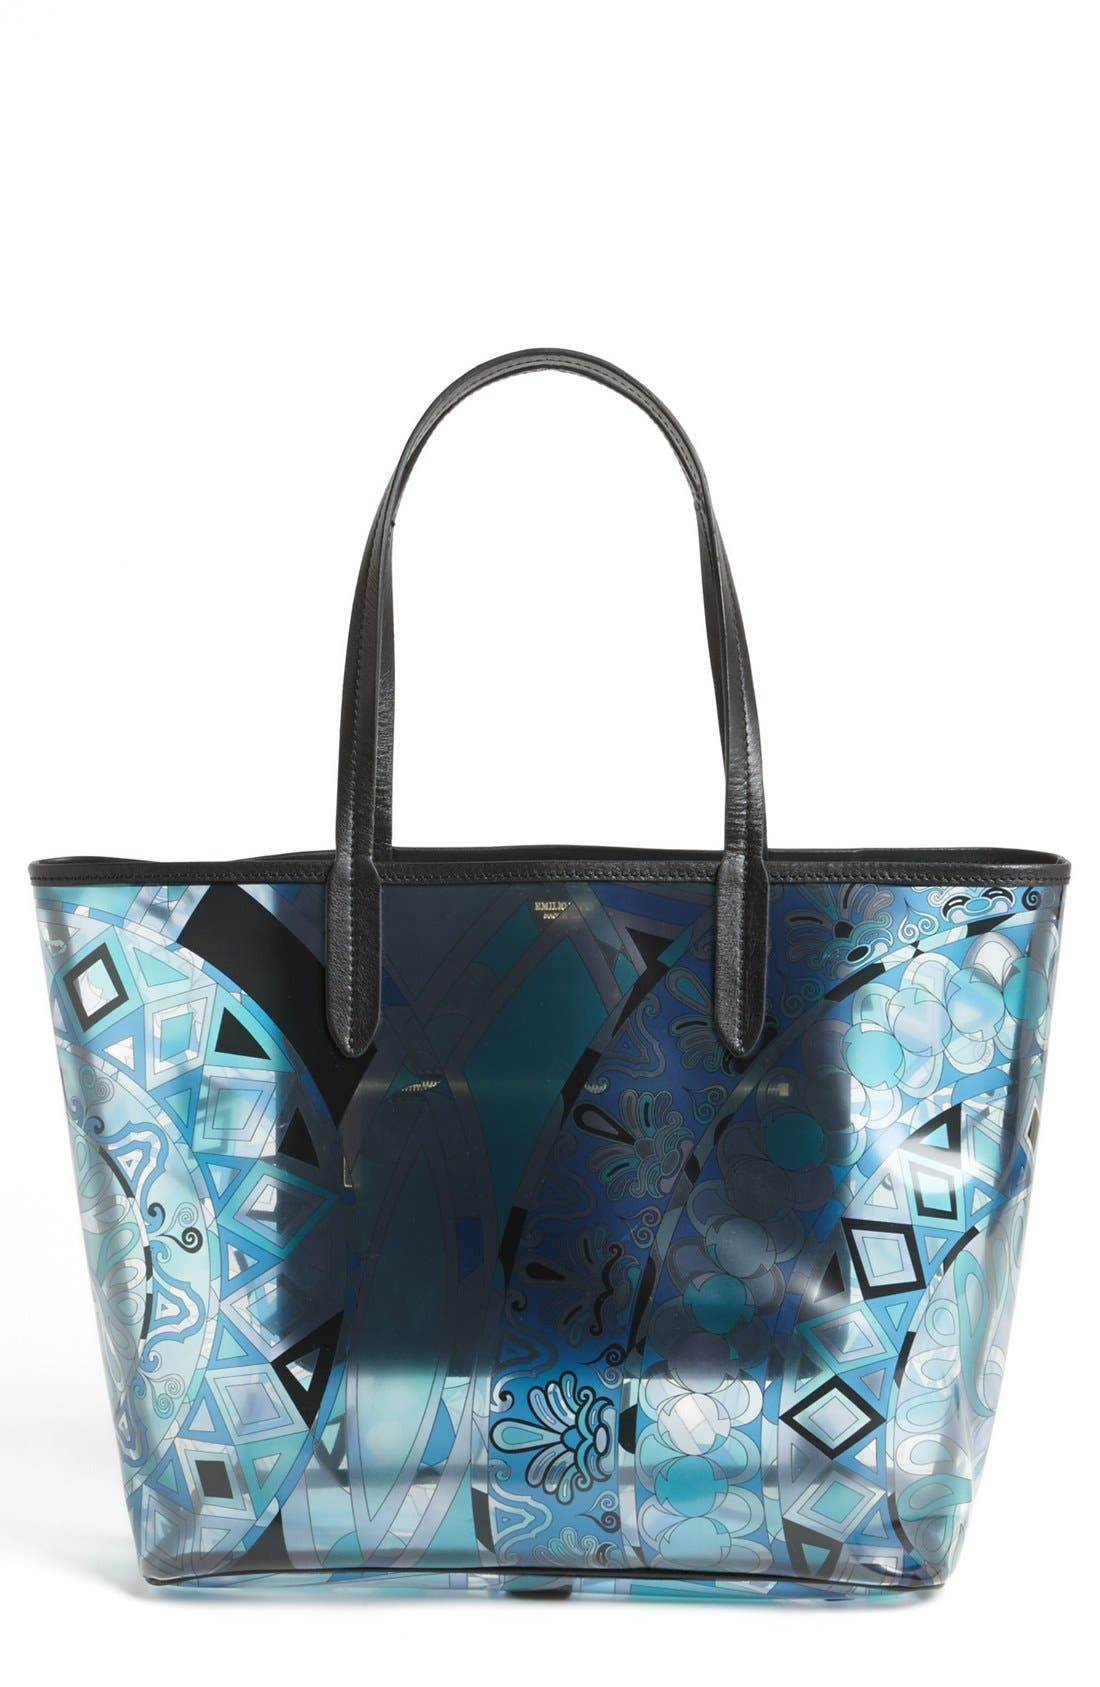 Alternate Image 1 Selected - Emilio Pucci 'Small' Print Tote